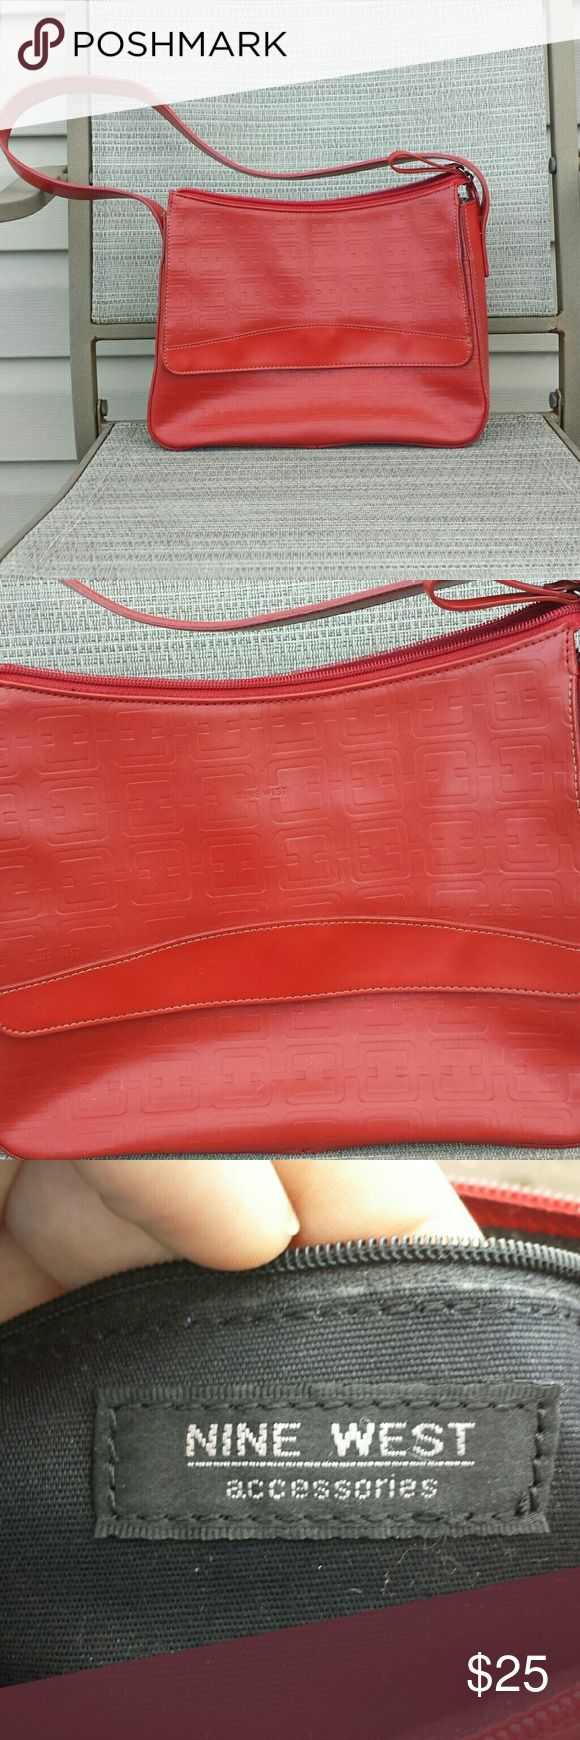 Nine West Purse Beautiful Red Nine West Purse. Liner completely in tact, no damage to the inside. A tiny scuff mark pictured. Nine West Bags